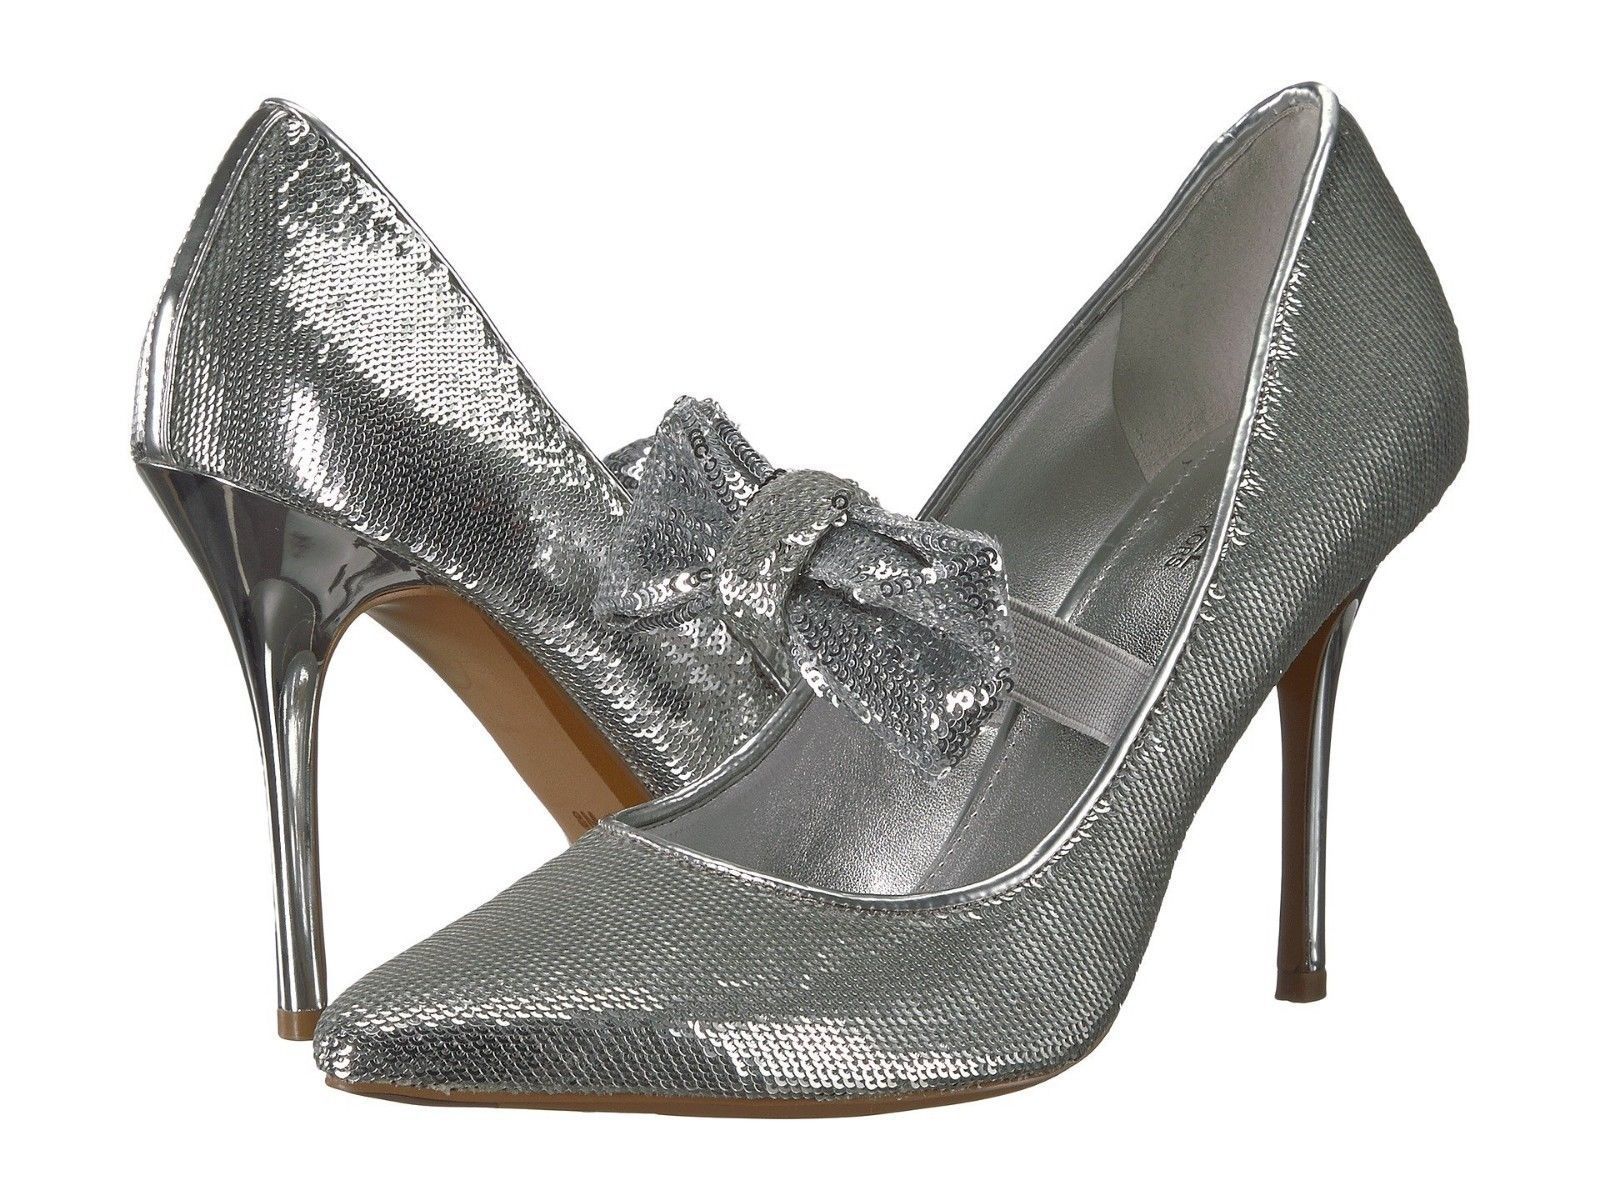 Primary image for MICHAEL Michael Kors Paris Pump Silver Sequin Size 7